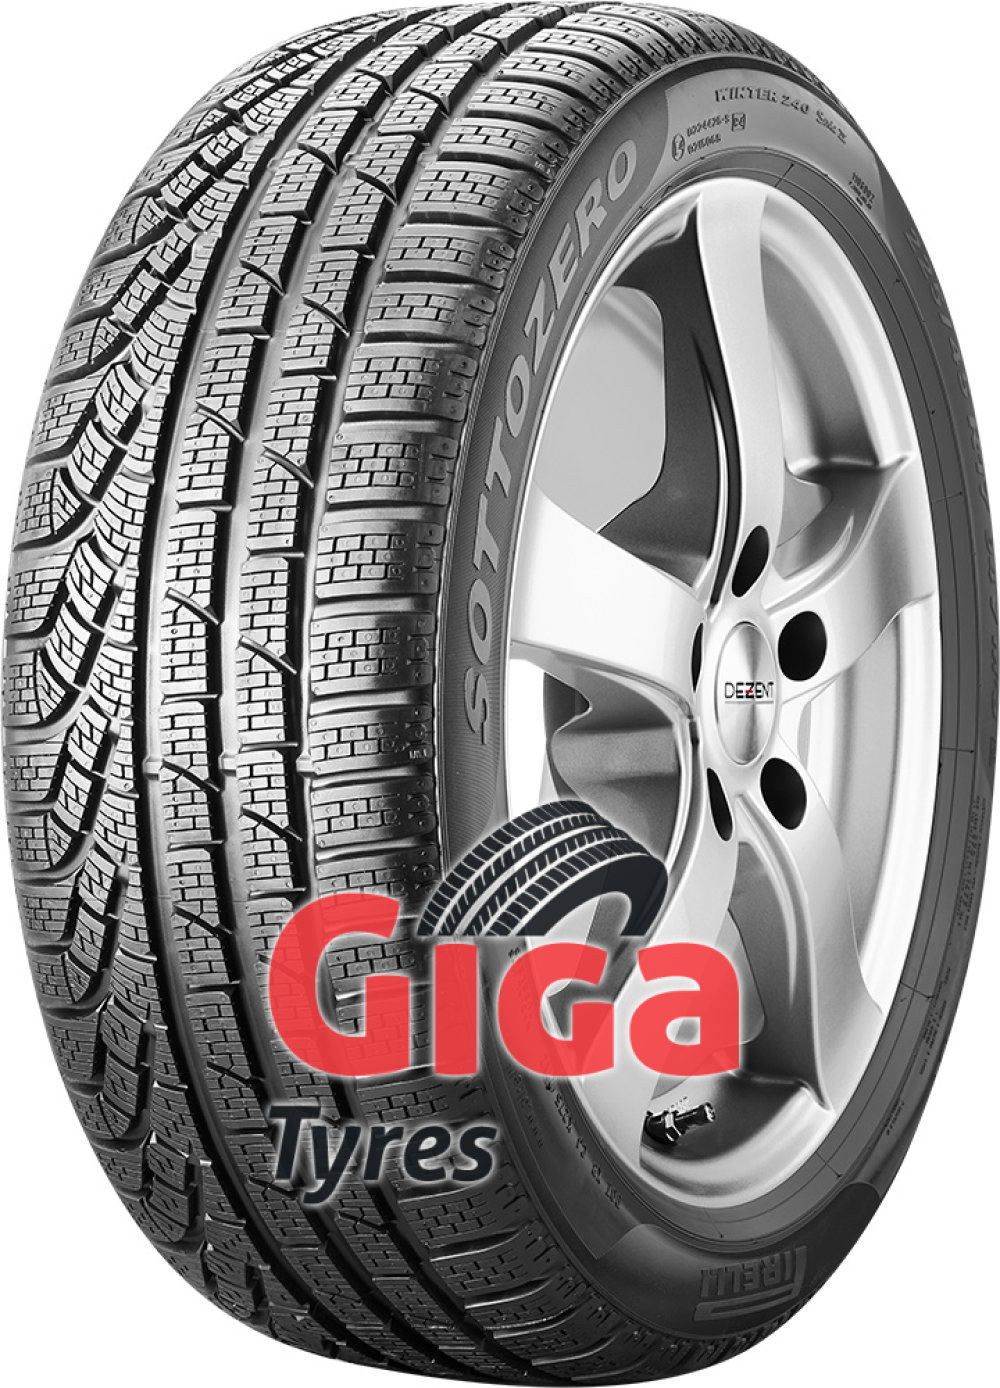 Pirelli W 240 SottoZero S2 ( 255/40 R19 100V XL , *, with rim protection (MFS) )